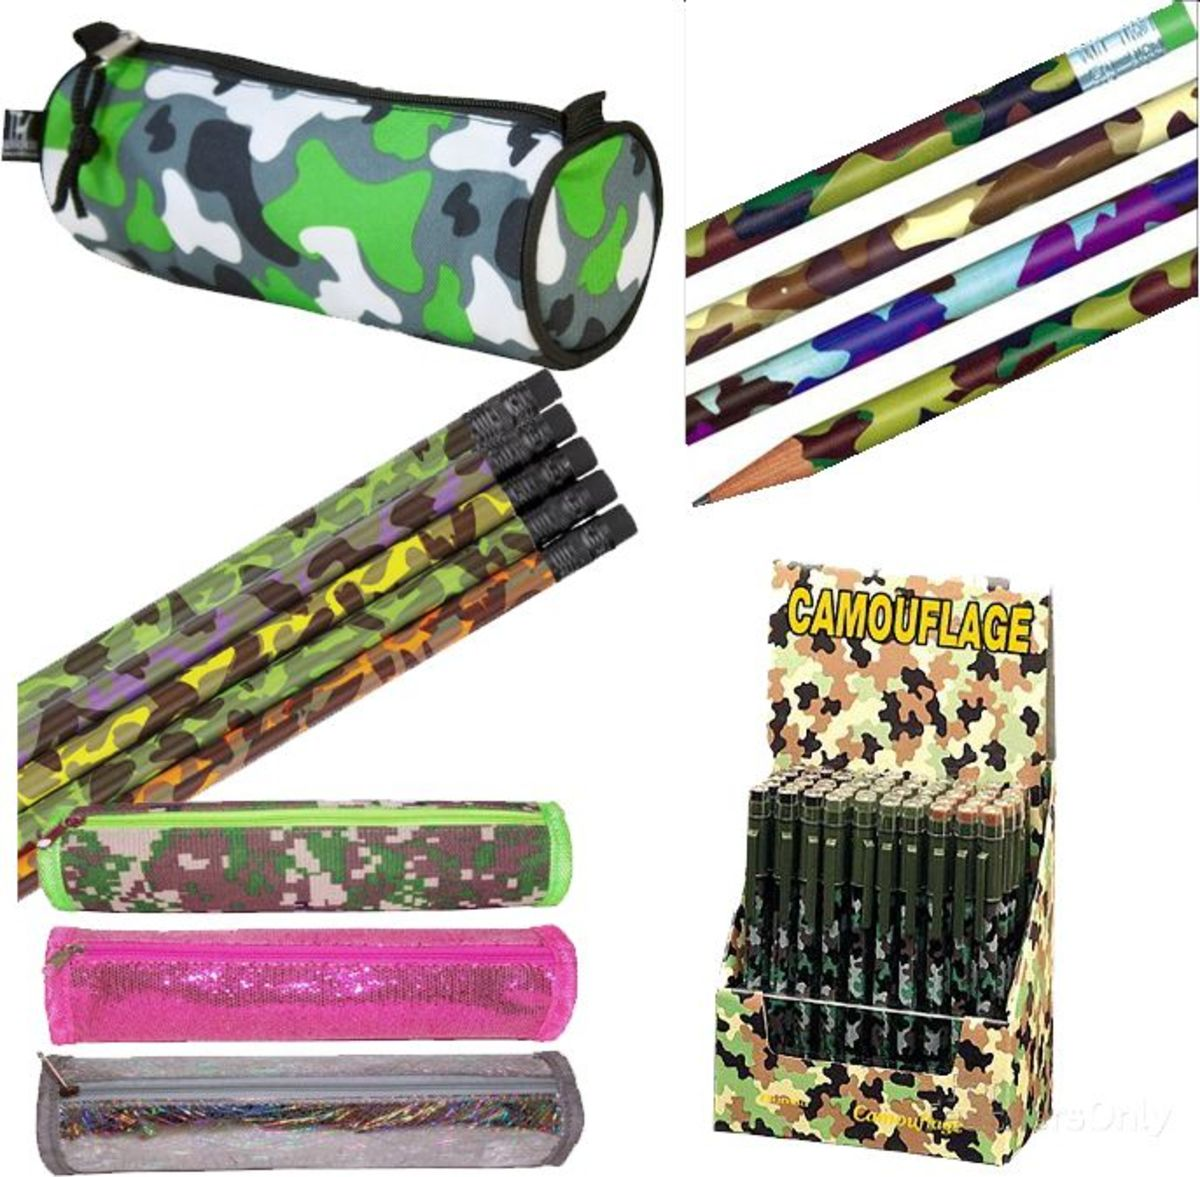 Camouflage Pencils and School Accessories